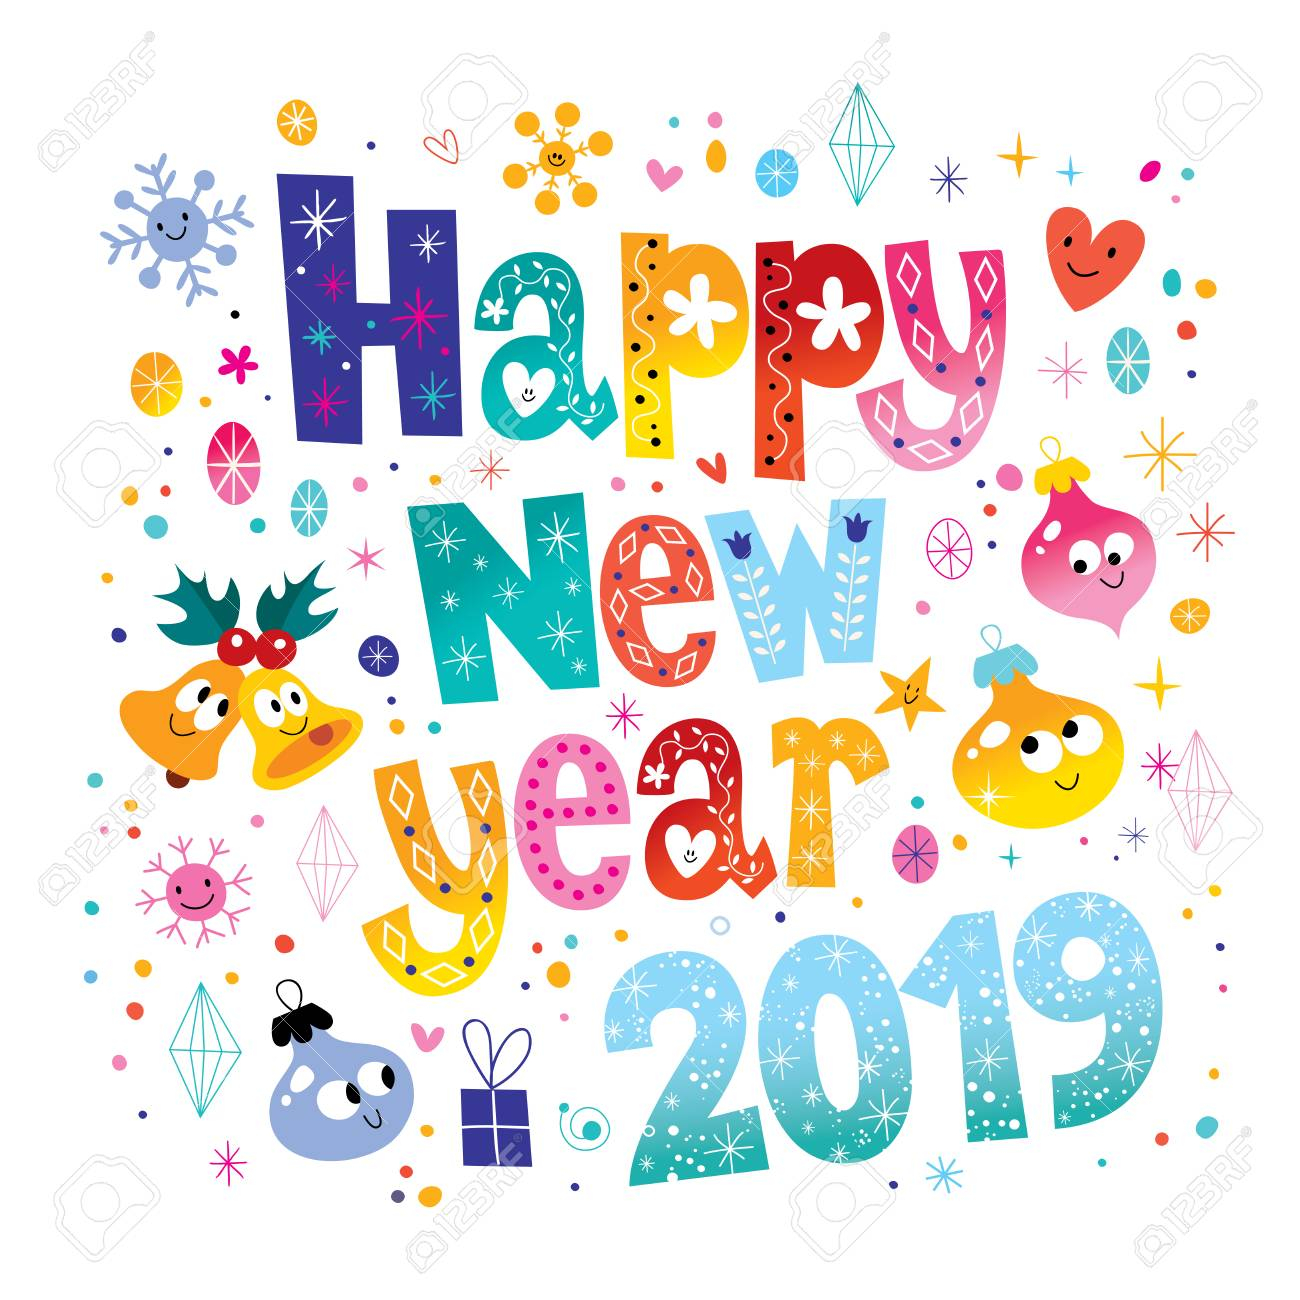 Happy New Year 2019 Clipart to free download.